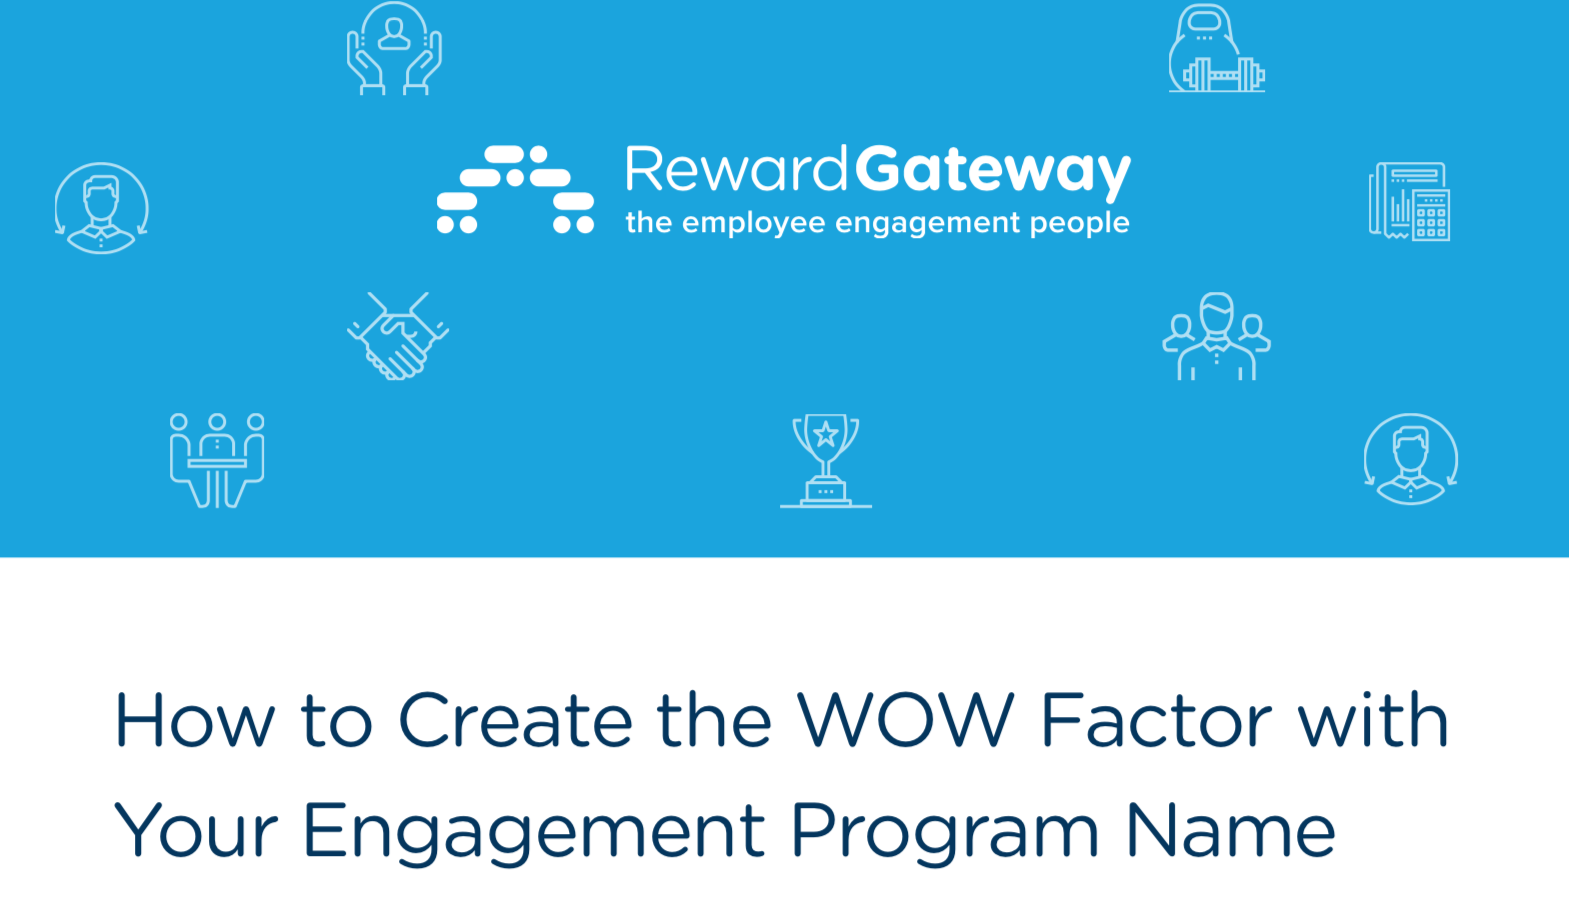 how-to-create-wow-factor-with-engagement-program-name-au